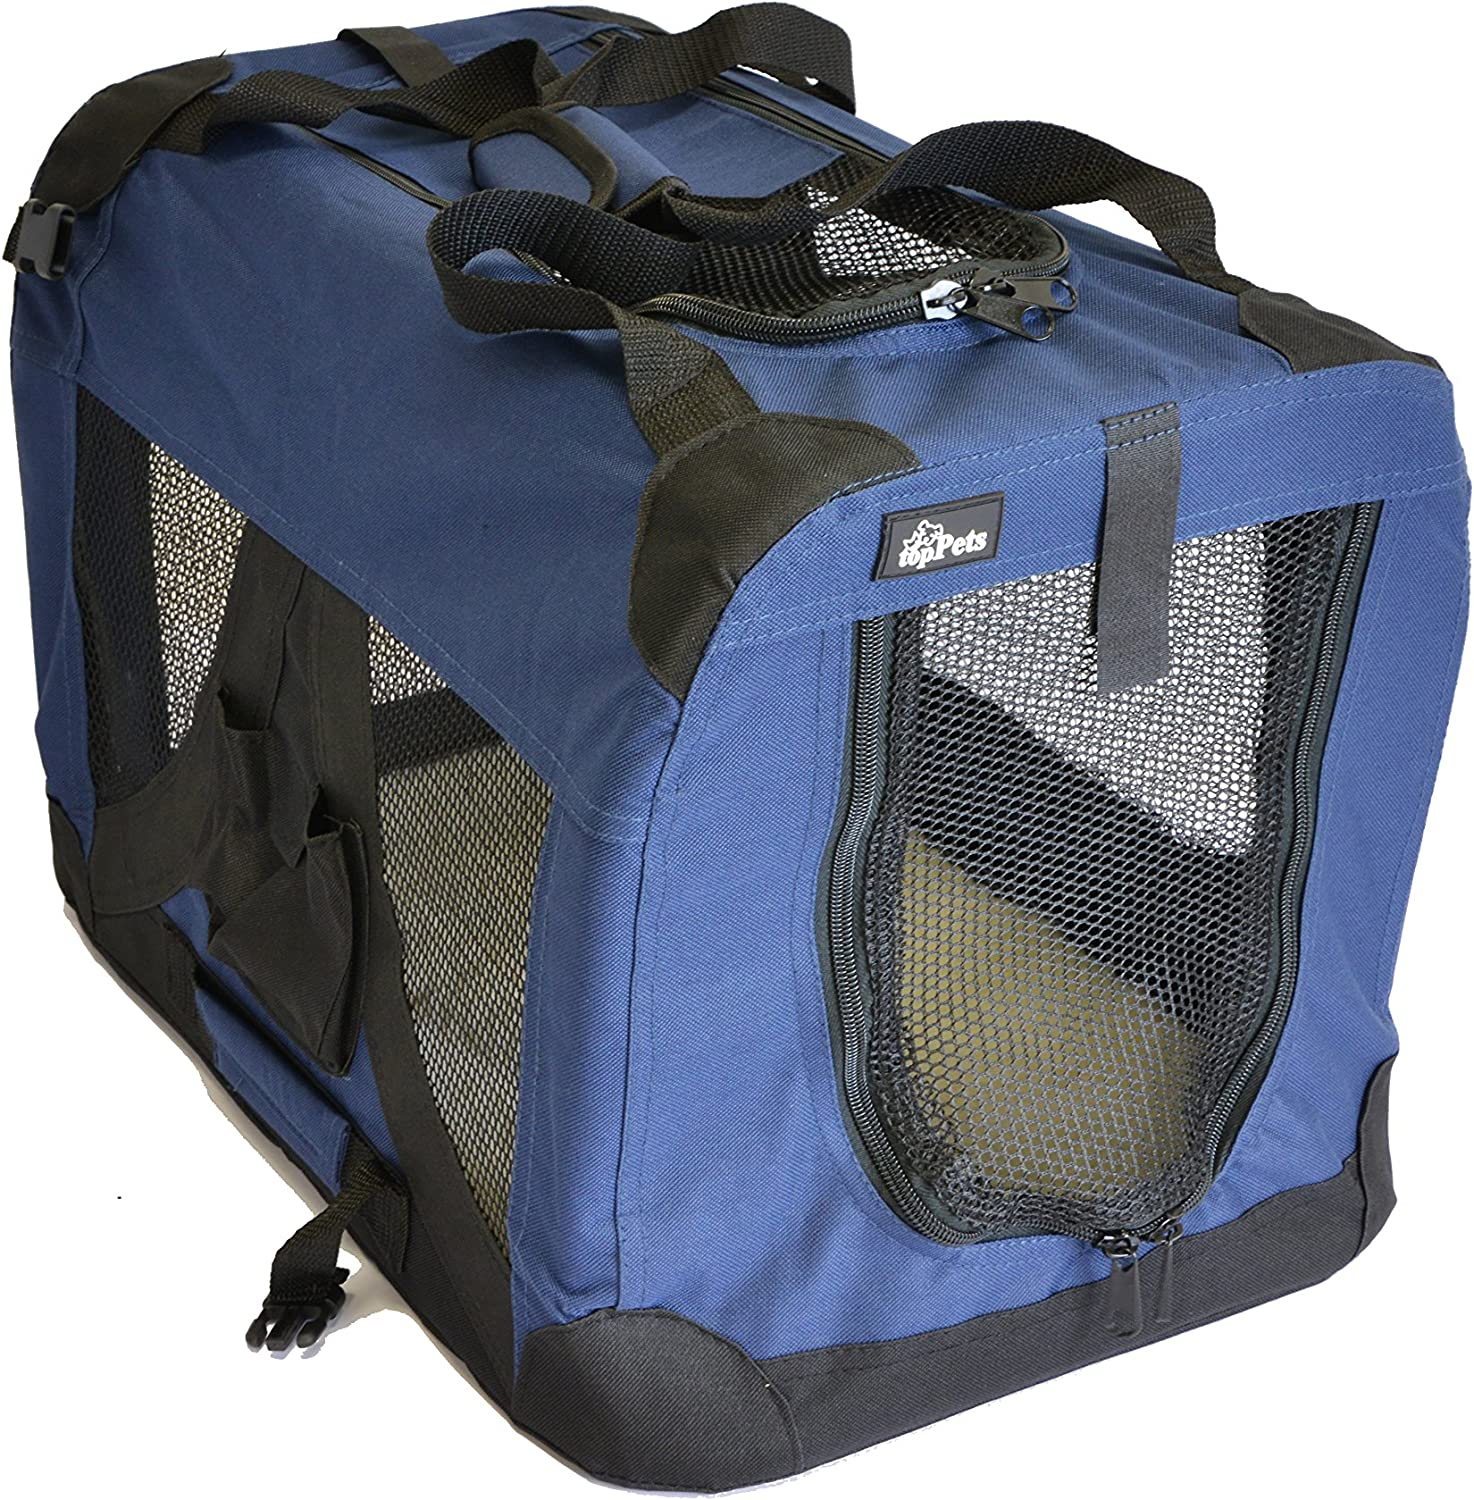 Portable Soft Pet Crate or Kennel for Dog, Cat, or other small pets. Great for Indoor and Outdoor (Dark bluee, Small  19\ x14\ x14\ )